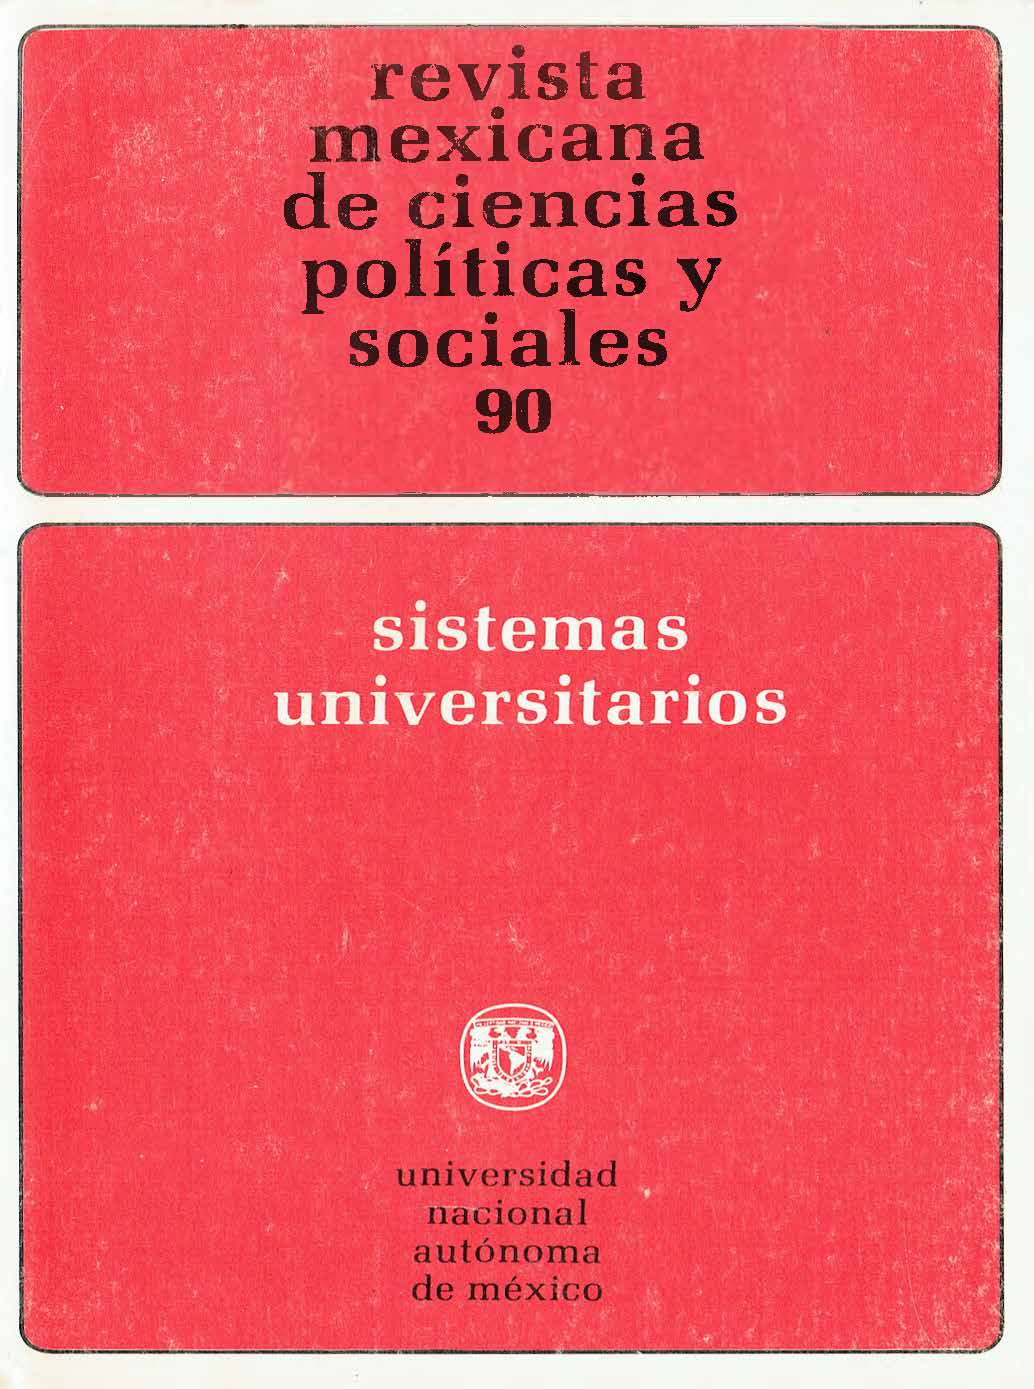 La Universidad Nacional de México (tres documentos)